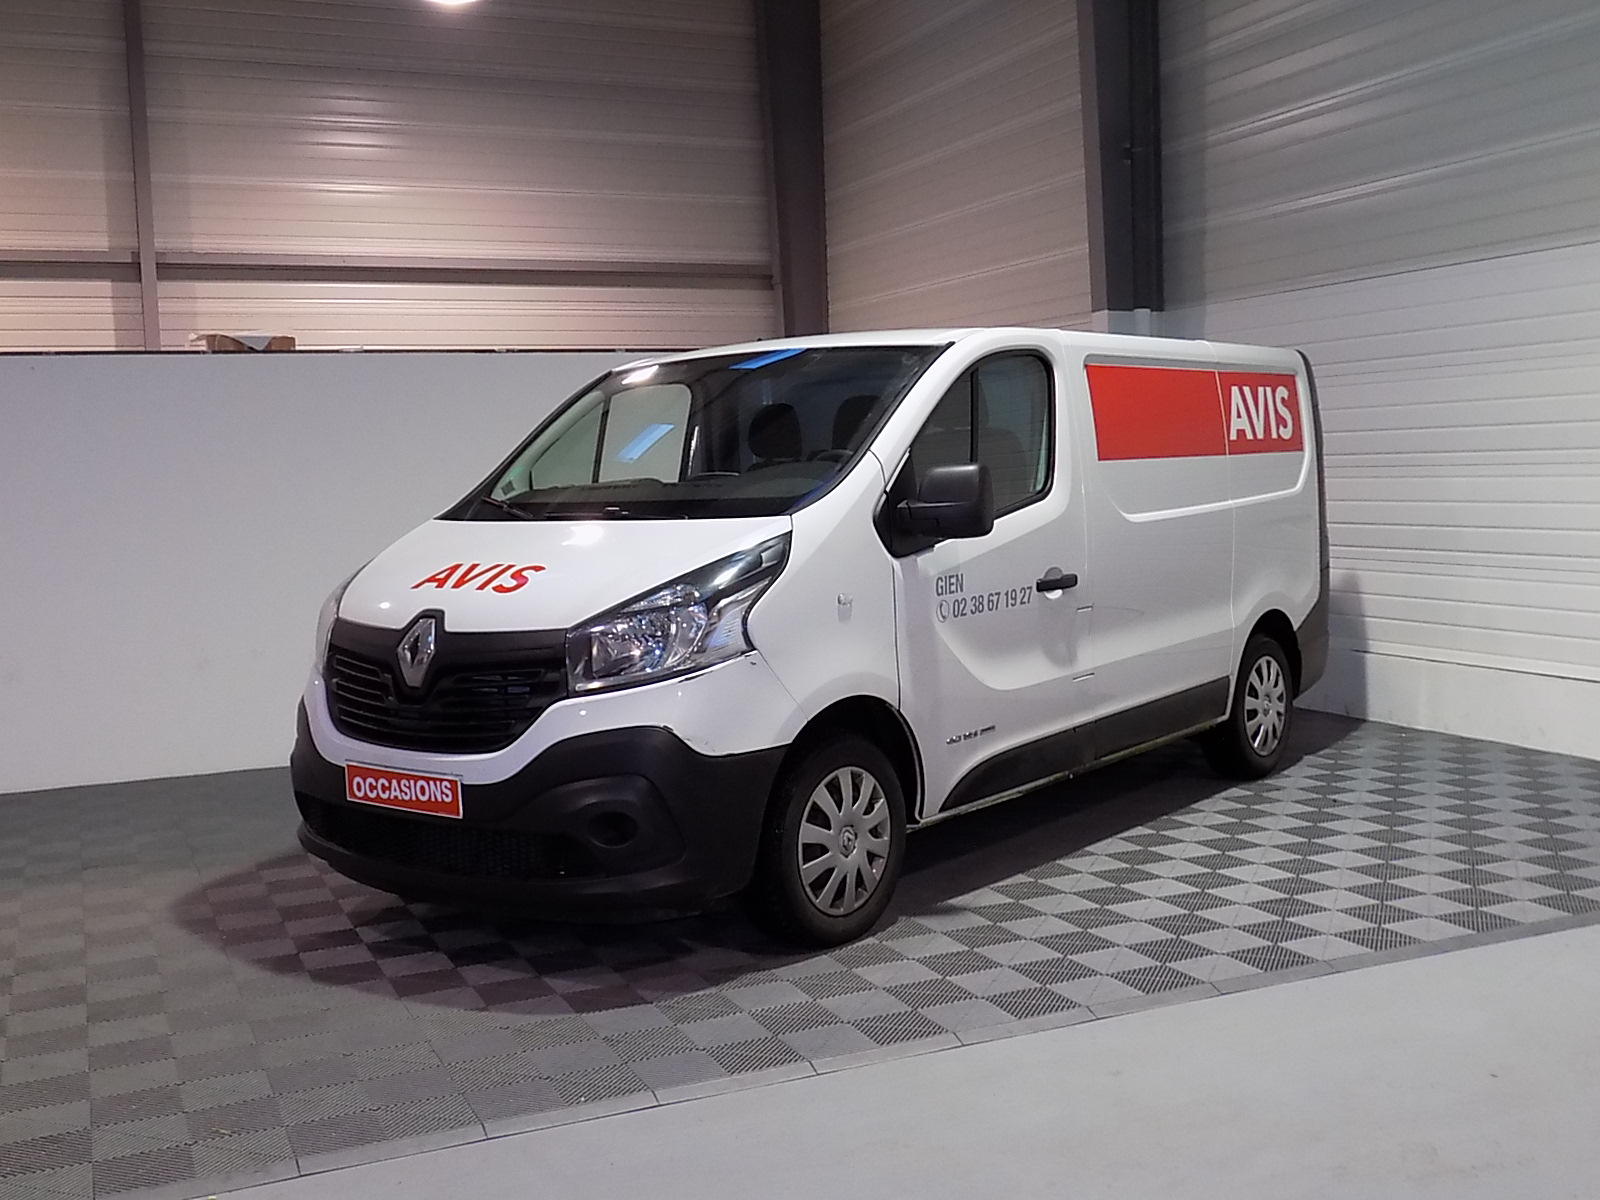 RENAULT TRAFIC FOURGON FGN L1H1 1200 KG DCI 125 ENERGY E6 GRAND CONFORT d'occasion